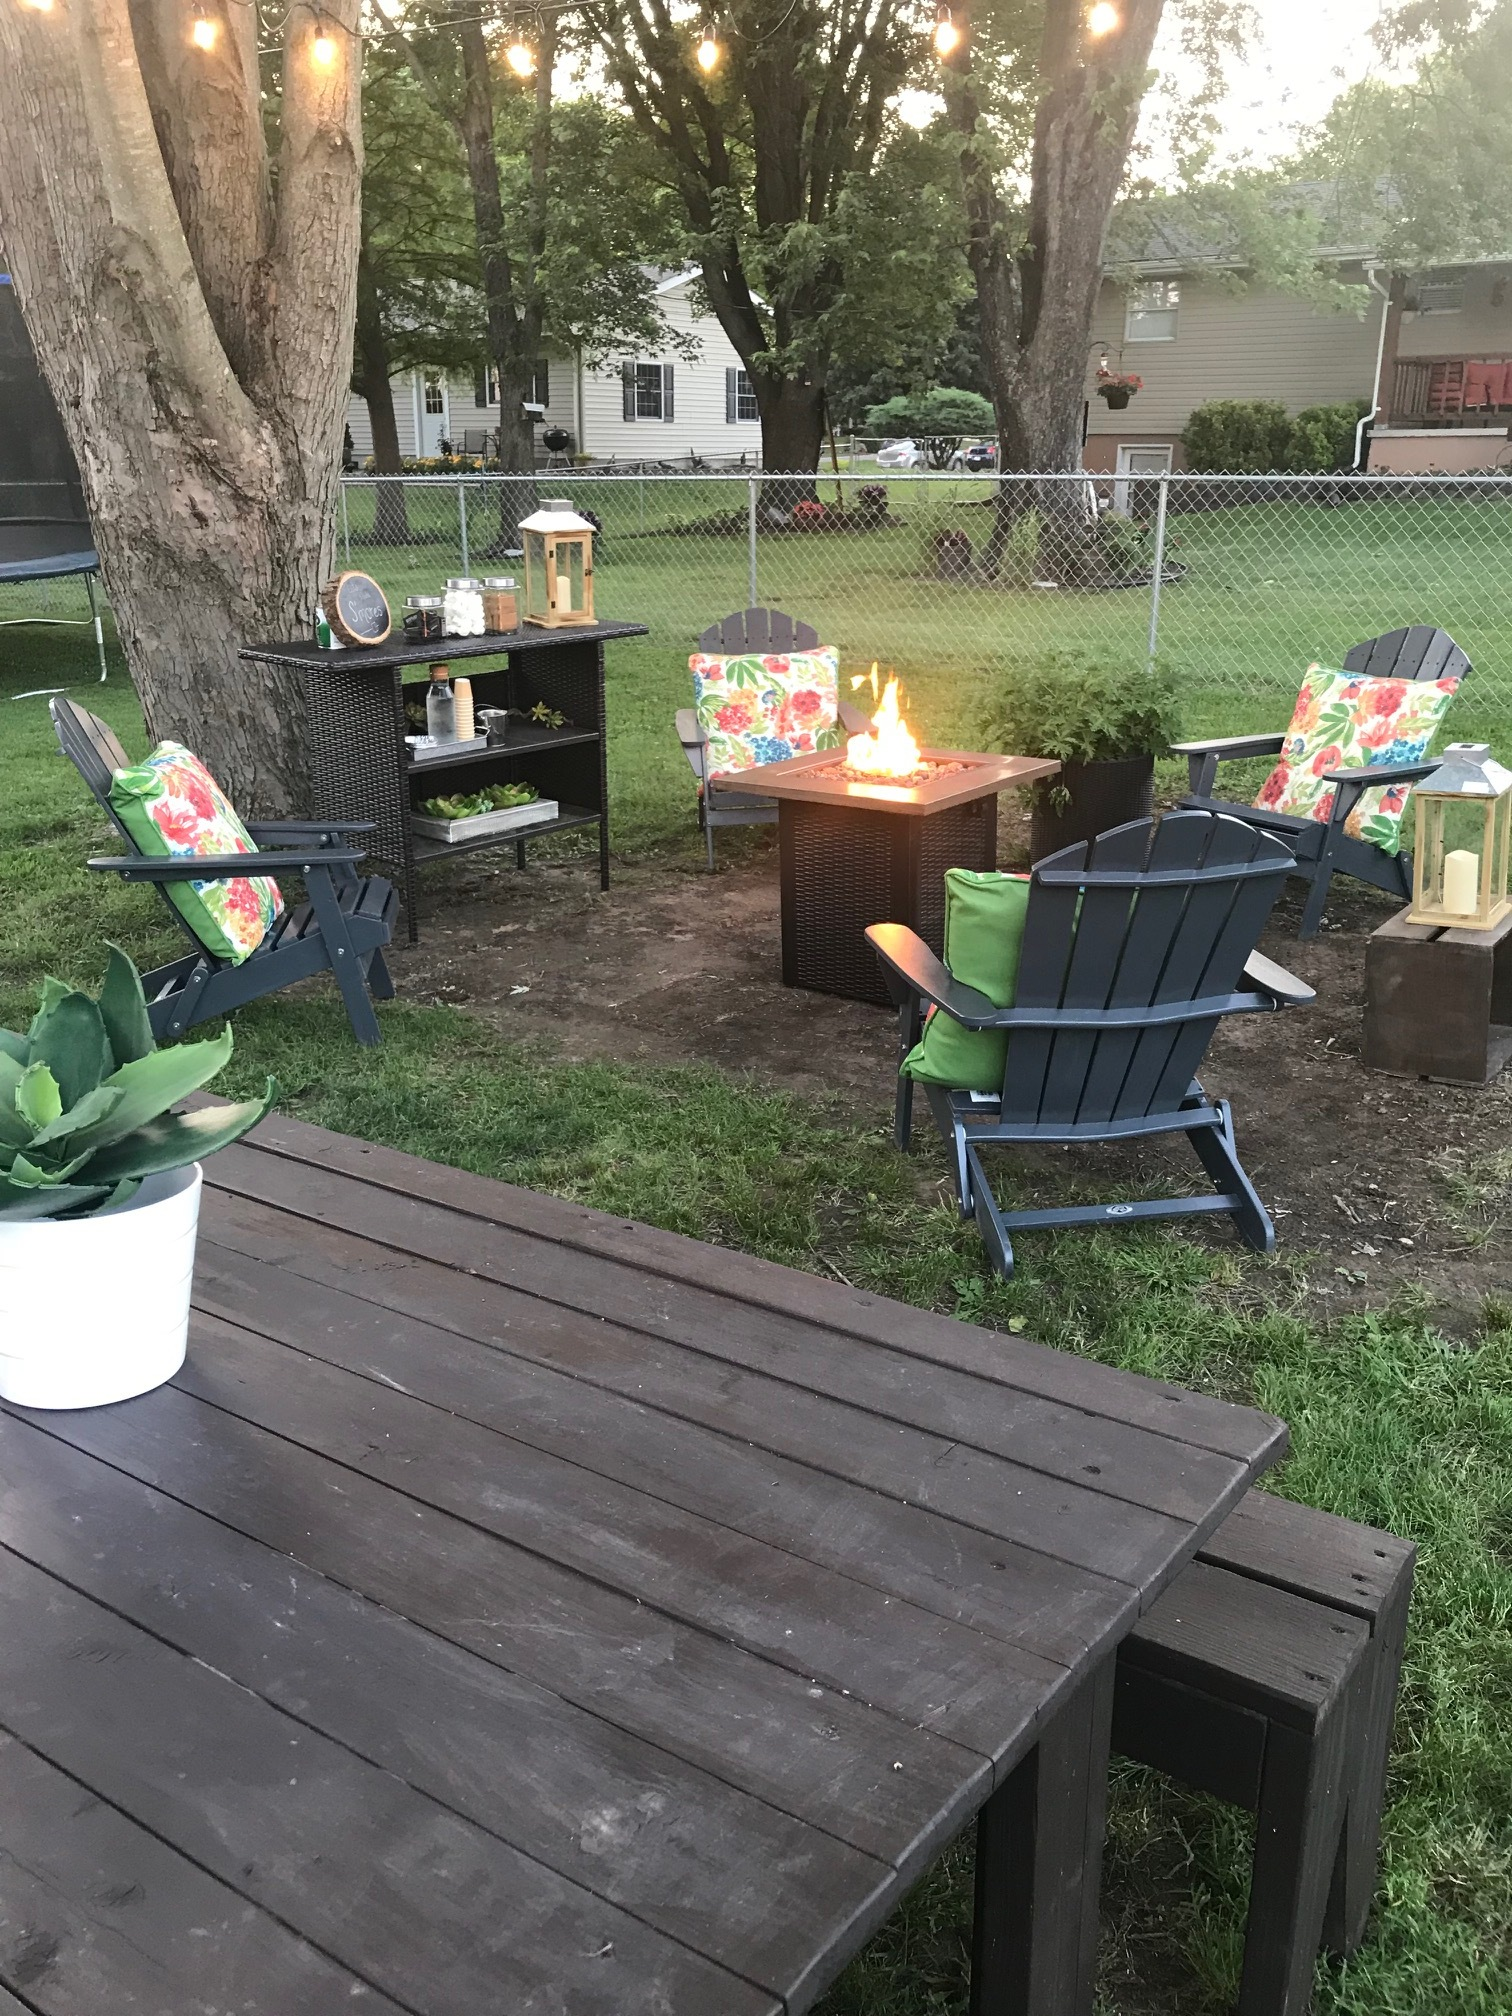 How to hang outdoor string lights. Create an outdoor oasis in your backyard for summer.